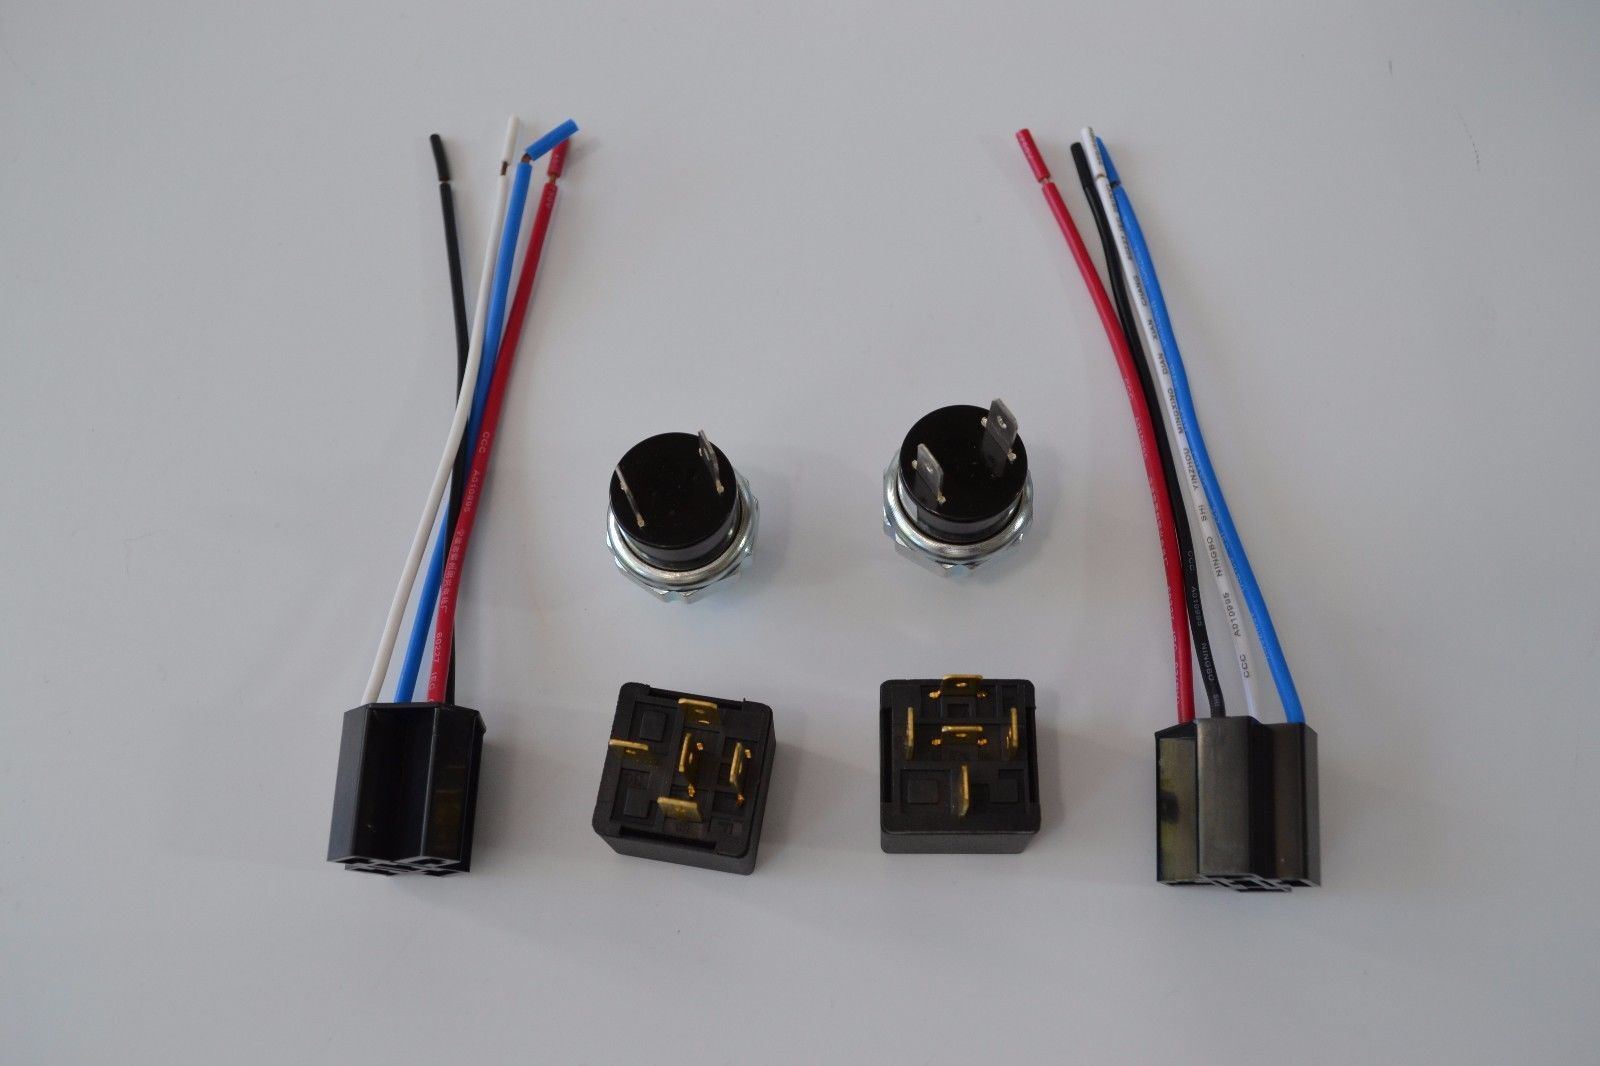 480C Air Compressor Chrome Shut Off Switches Relays Air Bags Air Horn 200psi - Source Automotive Engineering